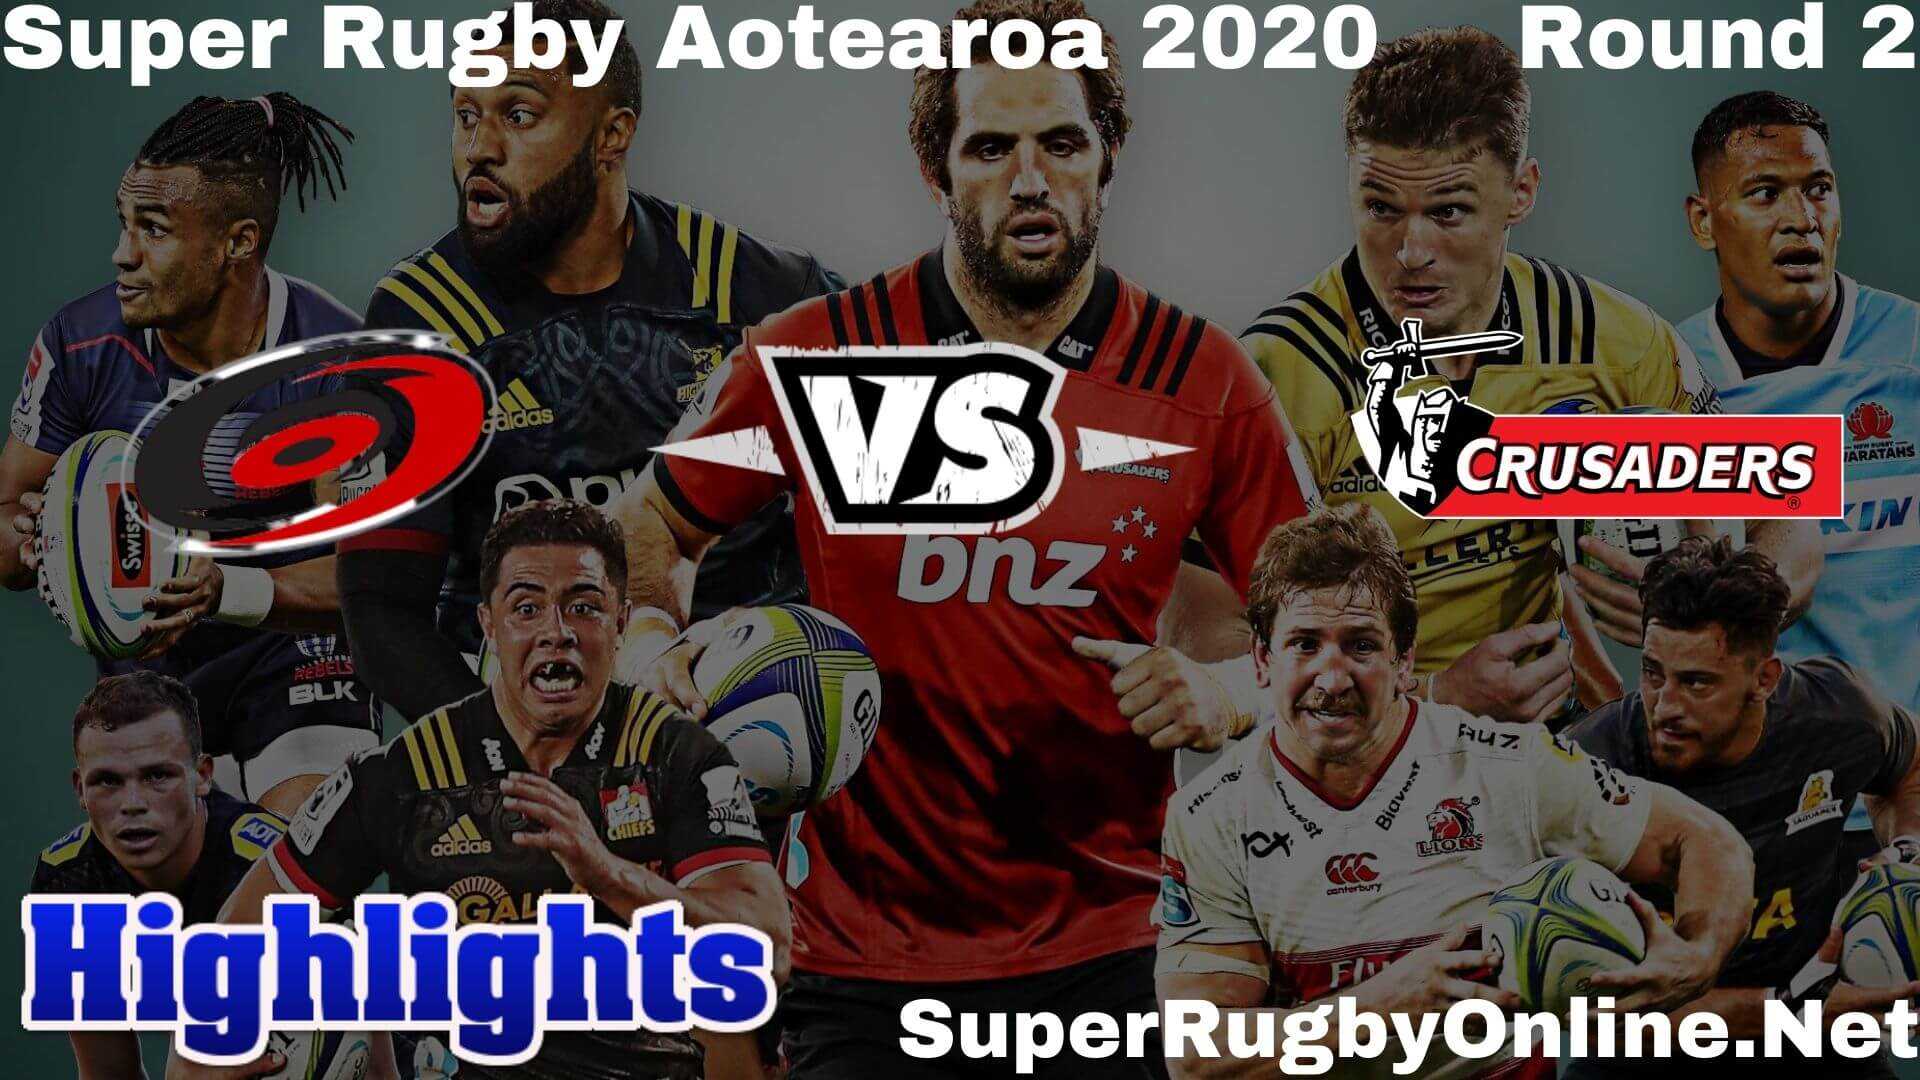 Hurricanes Vs Crusaders Highlights 2020 Rd 2 Super Rugby